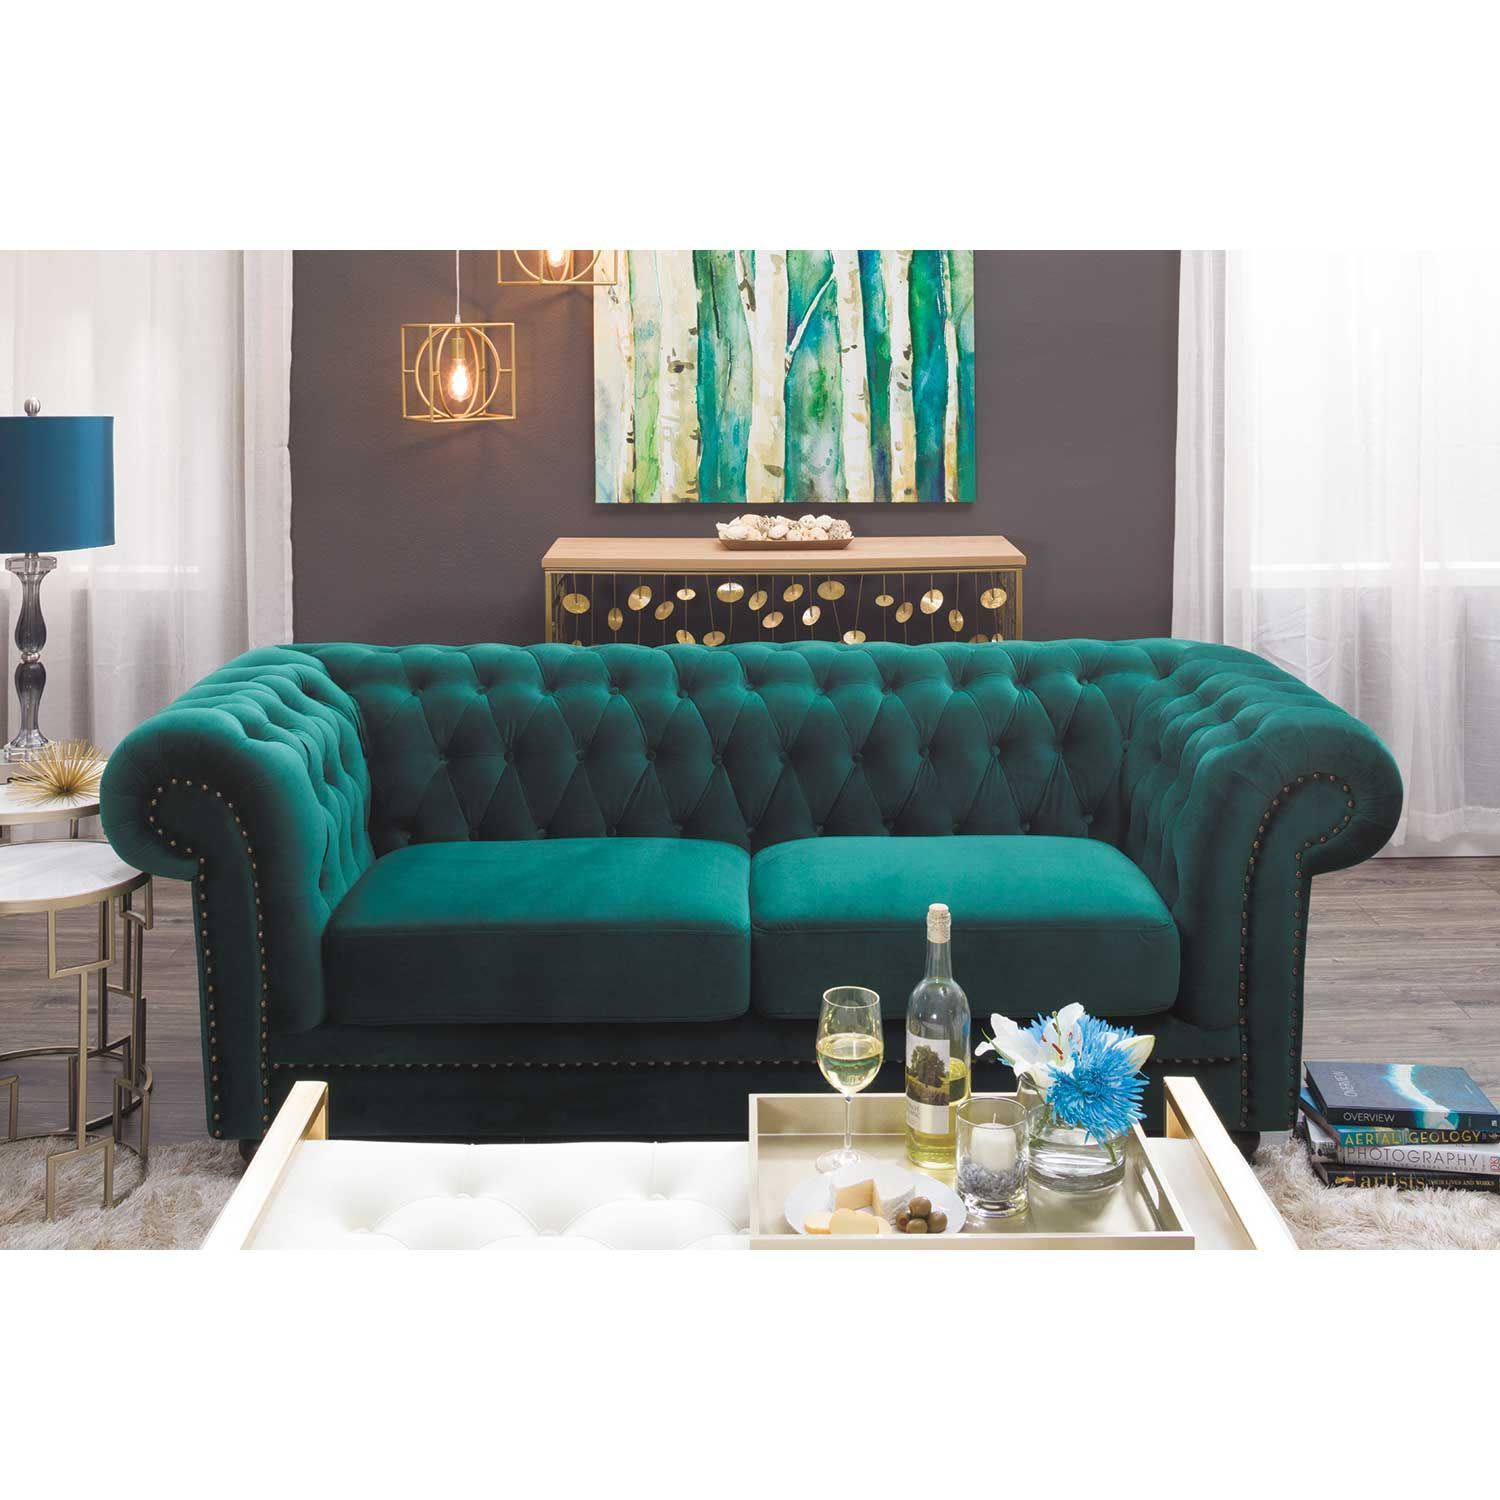 Callie Tufted Emerald Sofa My225 S3 Cc 42 Cambridge